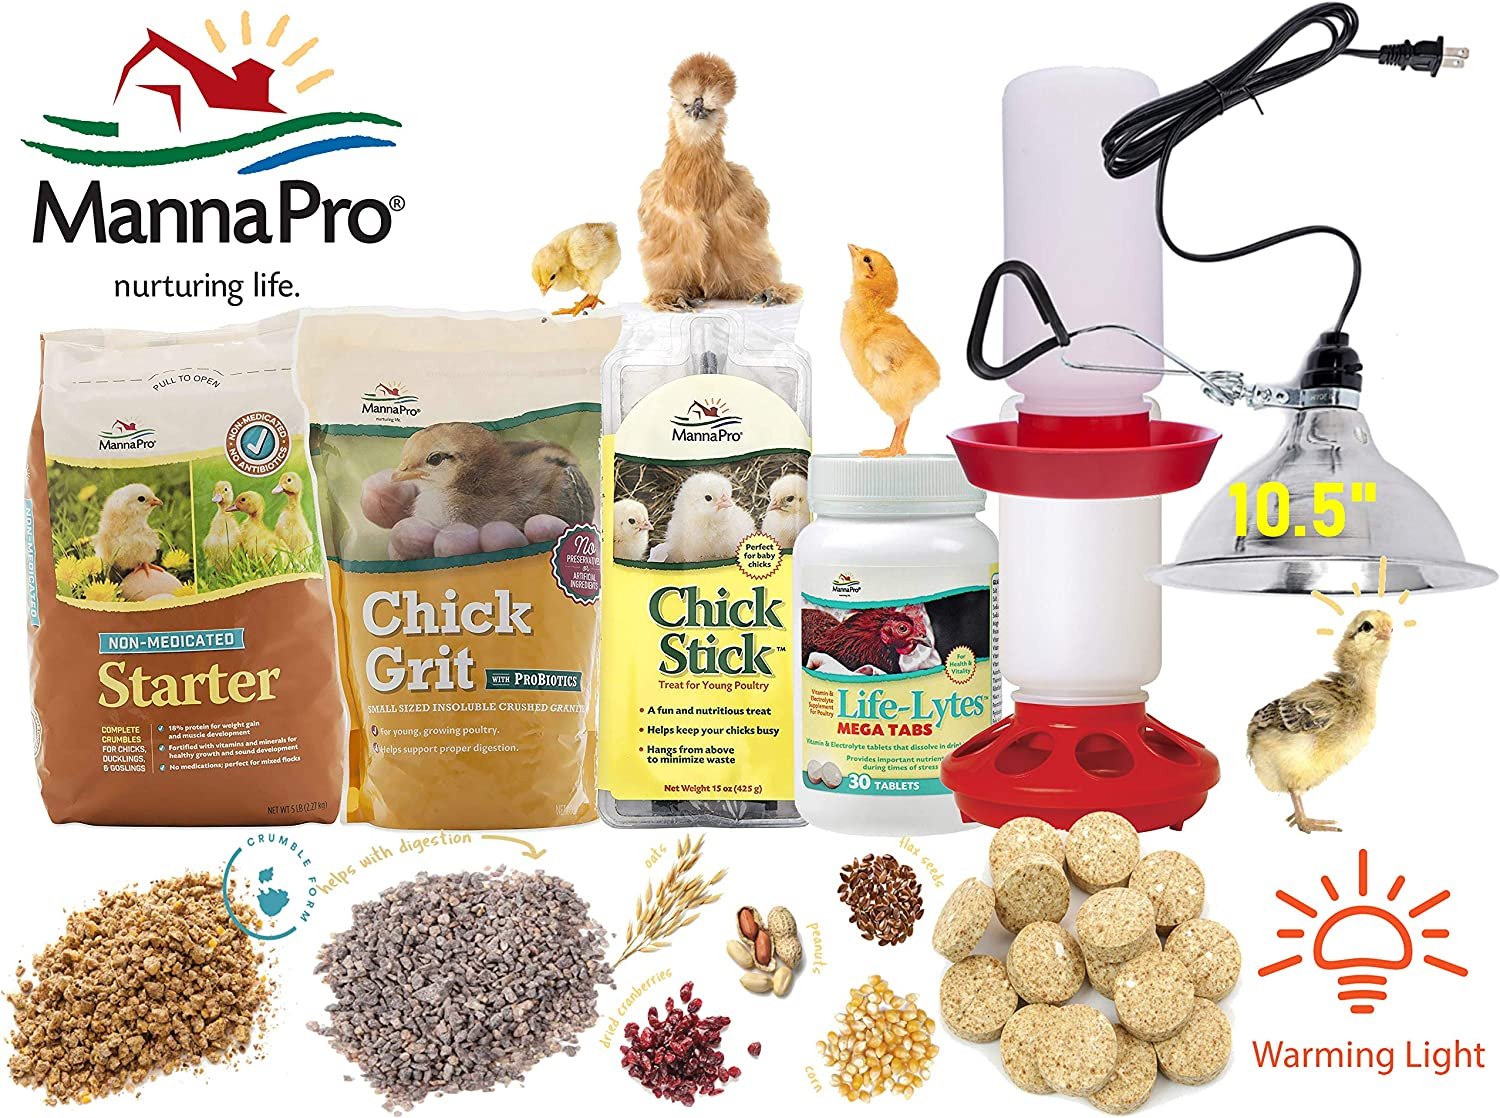 Manna Pro Chick Starter Kit Complete Master Set - Baby Chicken Supplies with Protein Crumbles, Chick Grit & Probiotics, Treat Stick, Vitamin & Electrolyte Supplement, Feeder, Waterer and Warming Light